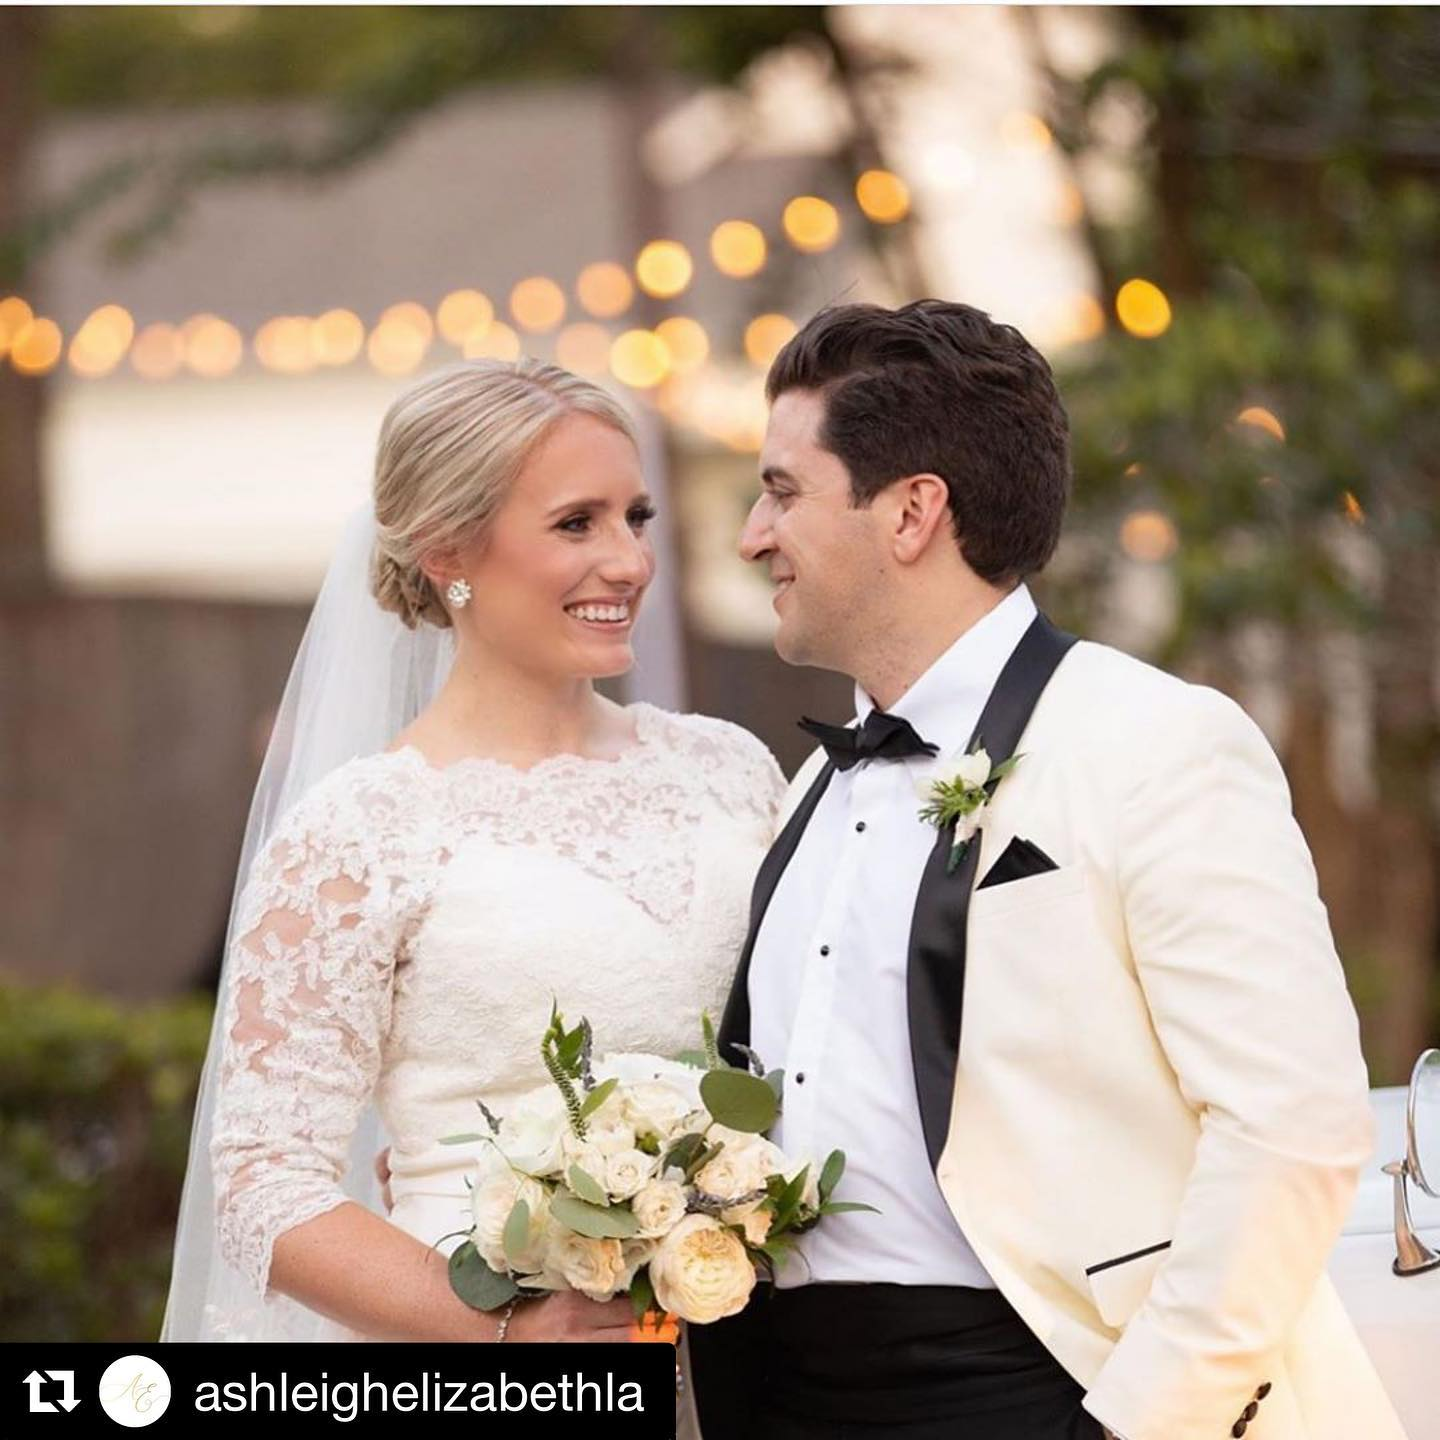 Bride with Groom in ivory and black shawl tuxedo from Tuxedos to Geaux